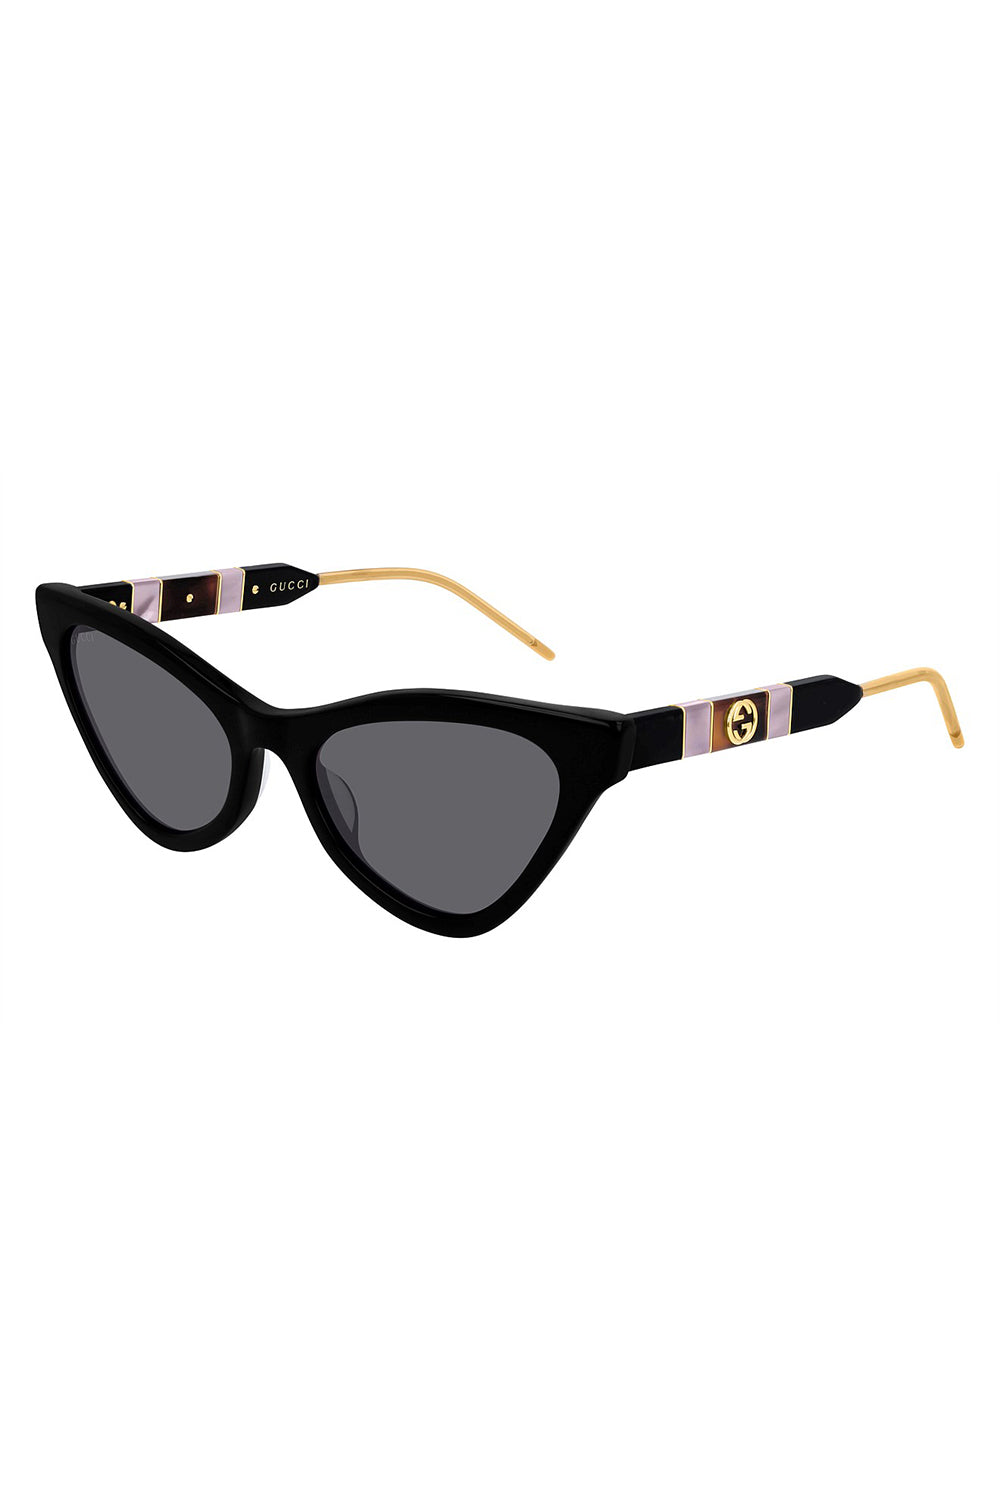 GUCCI - GG0597S 001 BLACK BLACK GREY